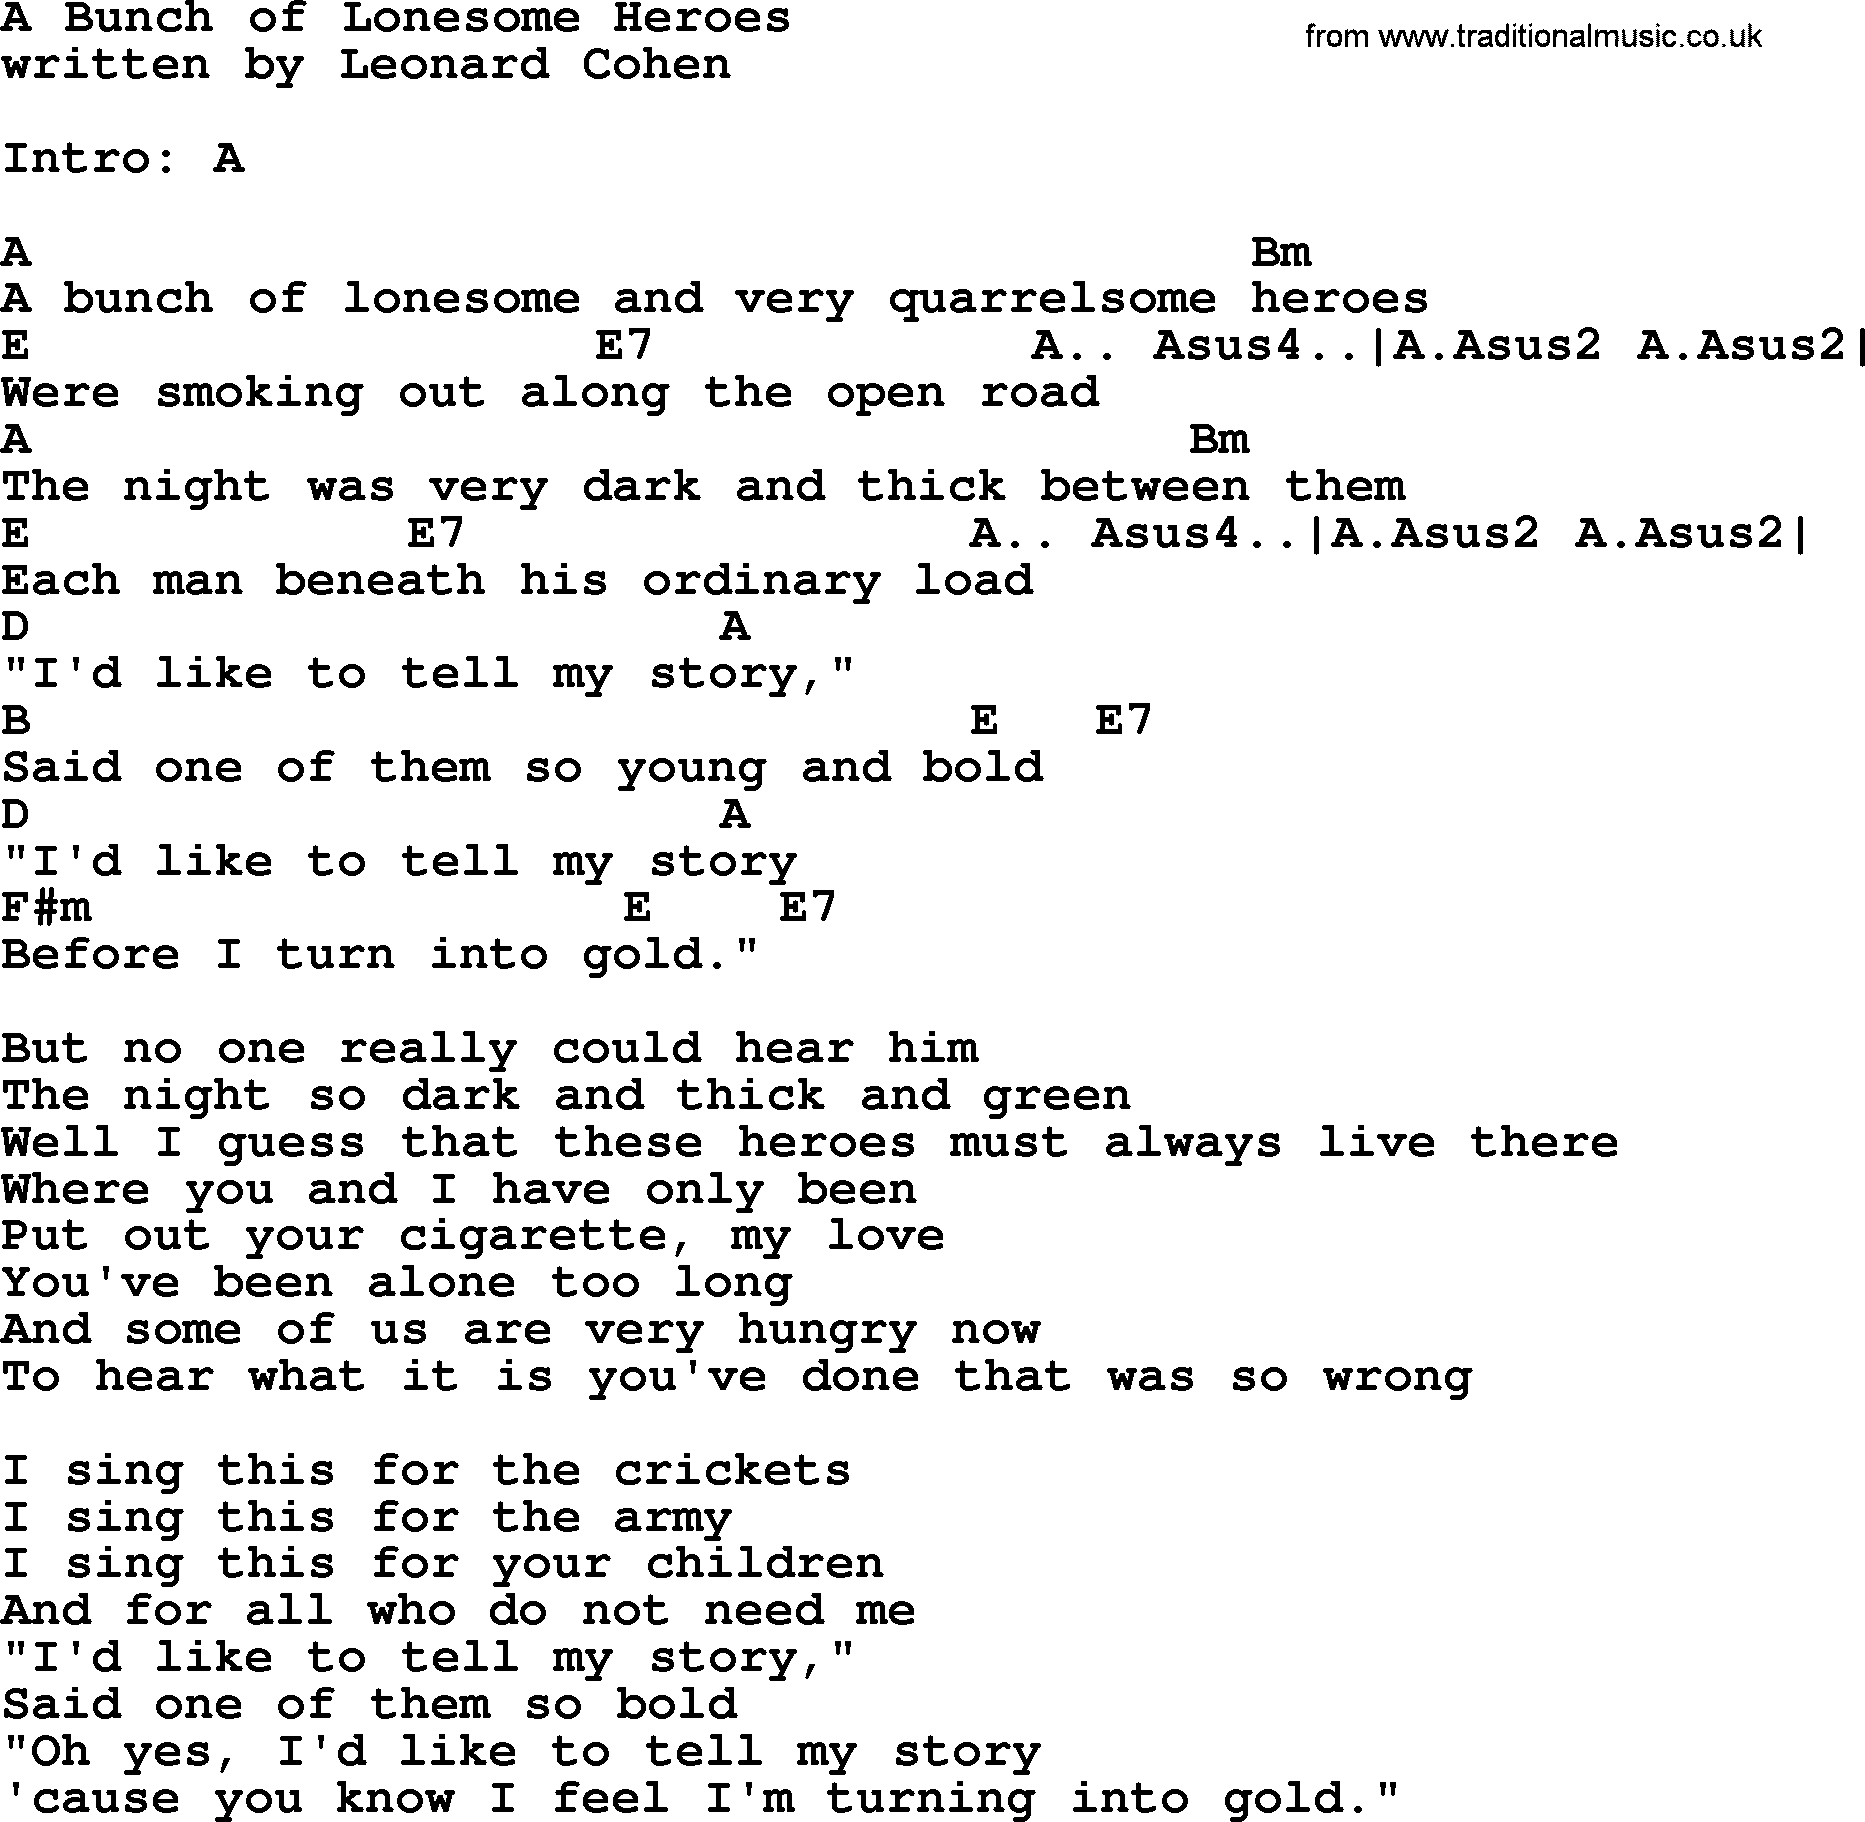 Leonard cohen song a bunch of lonesome heroes lyrics and chords leonard cohen song a bunch of lonesome heroes lyrics and chords hexwebz Choice Image